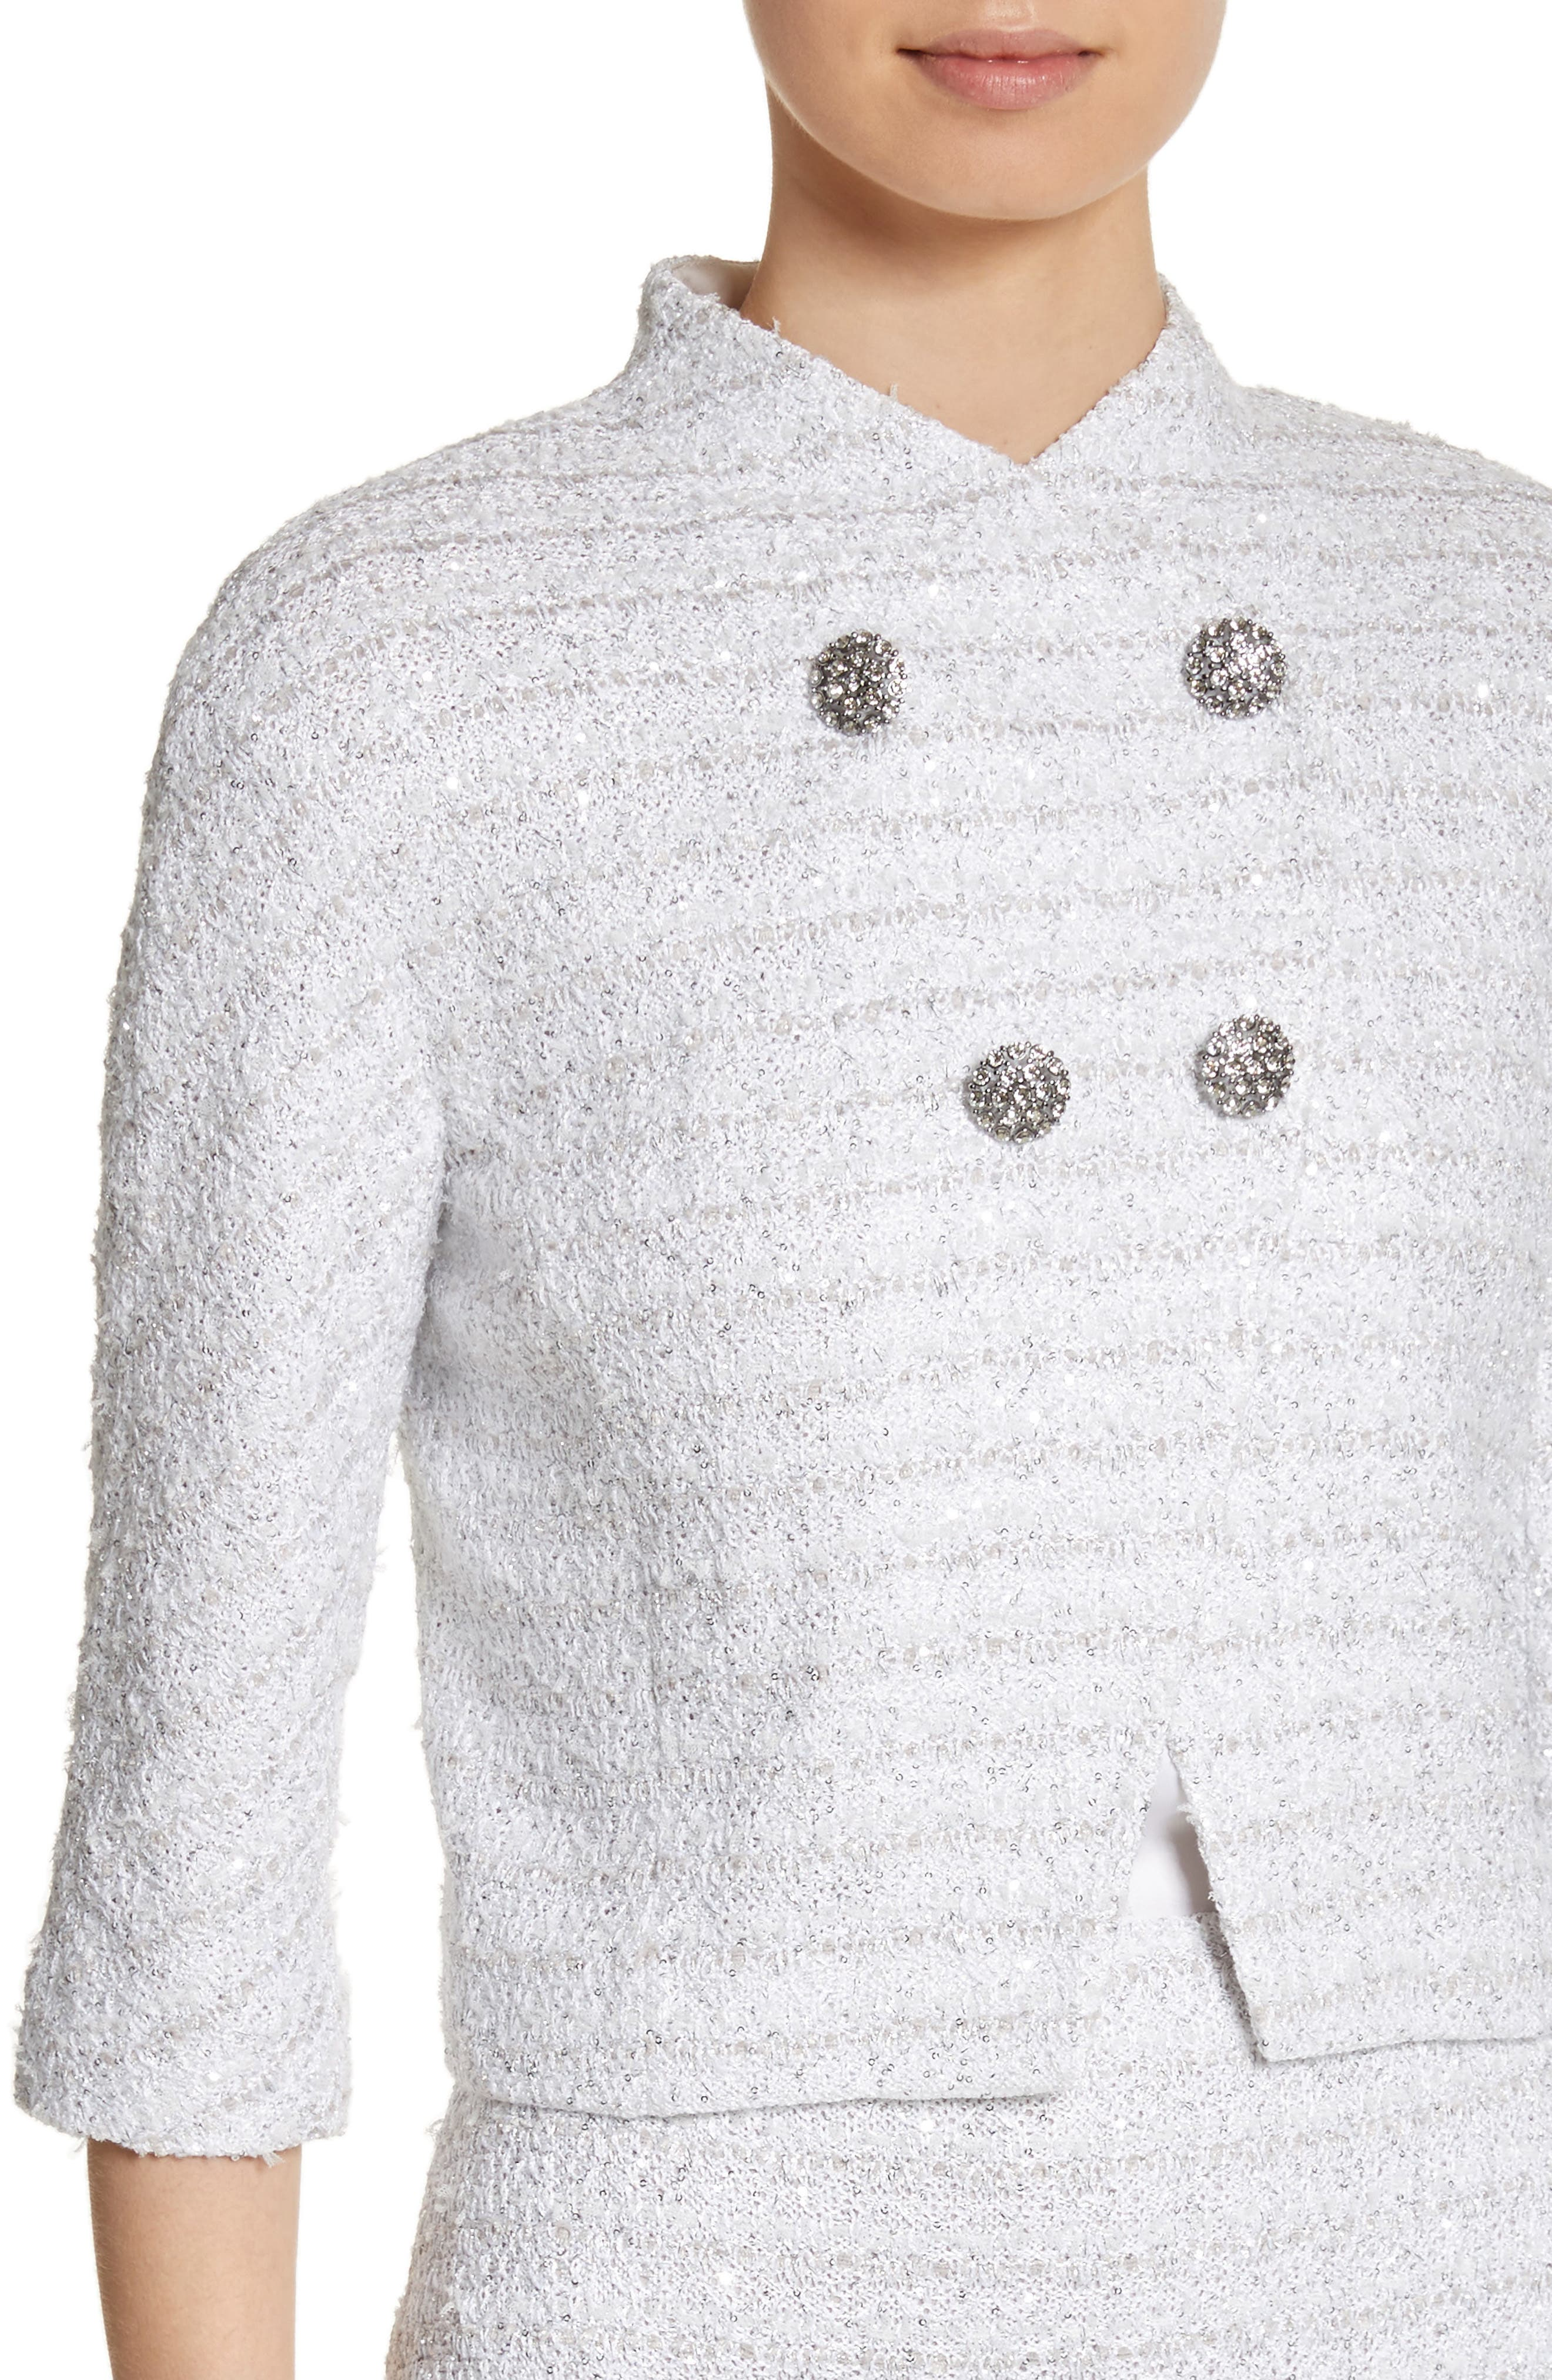 Frosted Metallic Tweed Jacket,                             Alternate thumbnail 4, color,